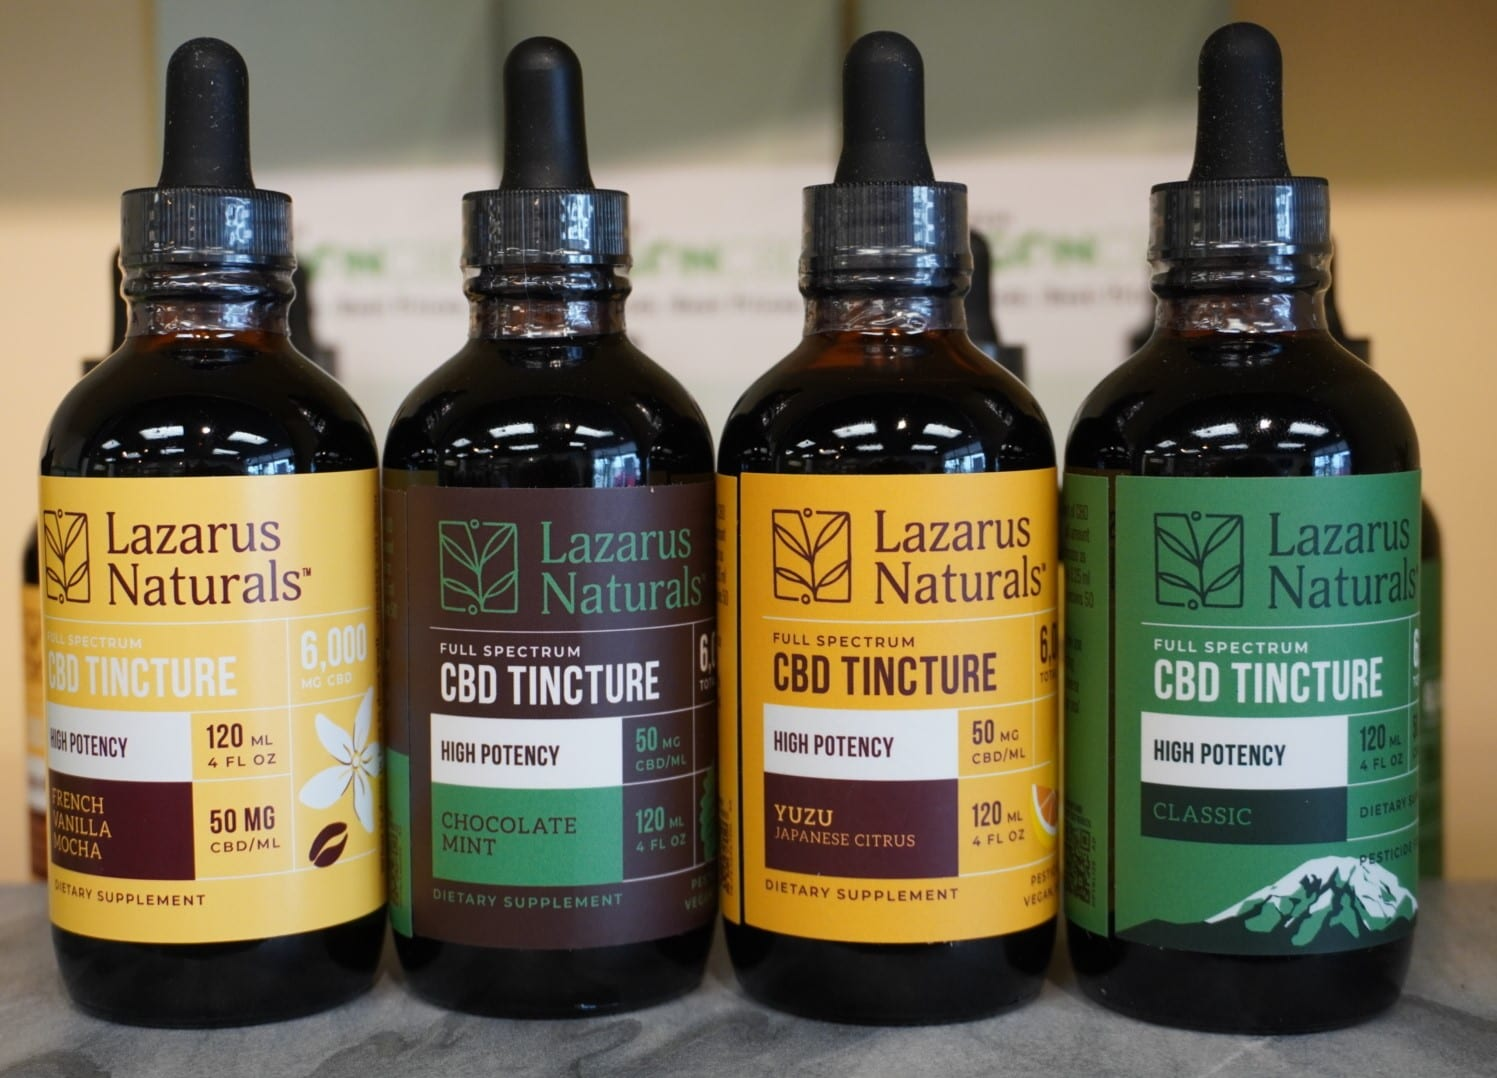 Four bottles of Lazarus Naturals CBD in 6000mg tinted bottles.